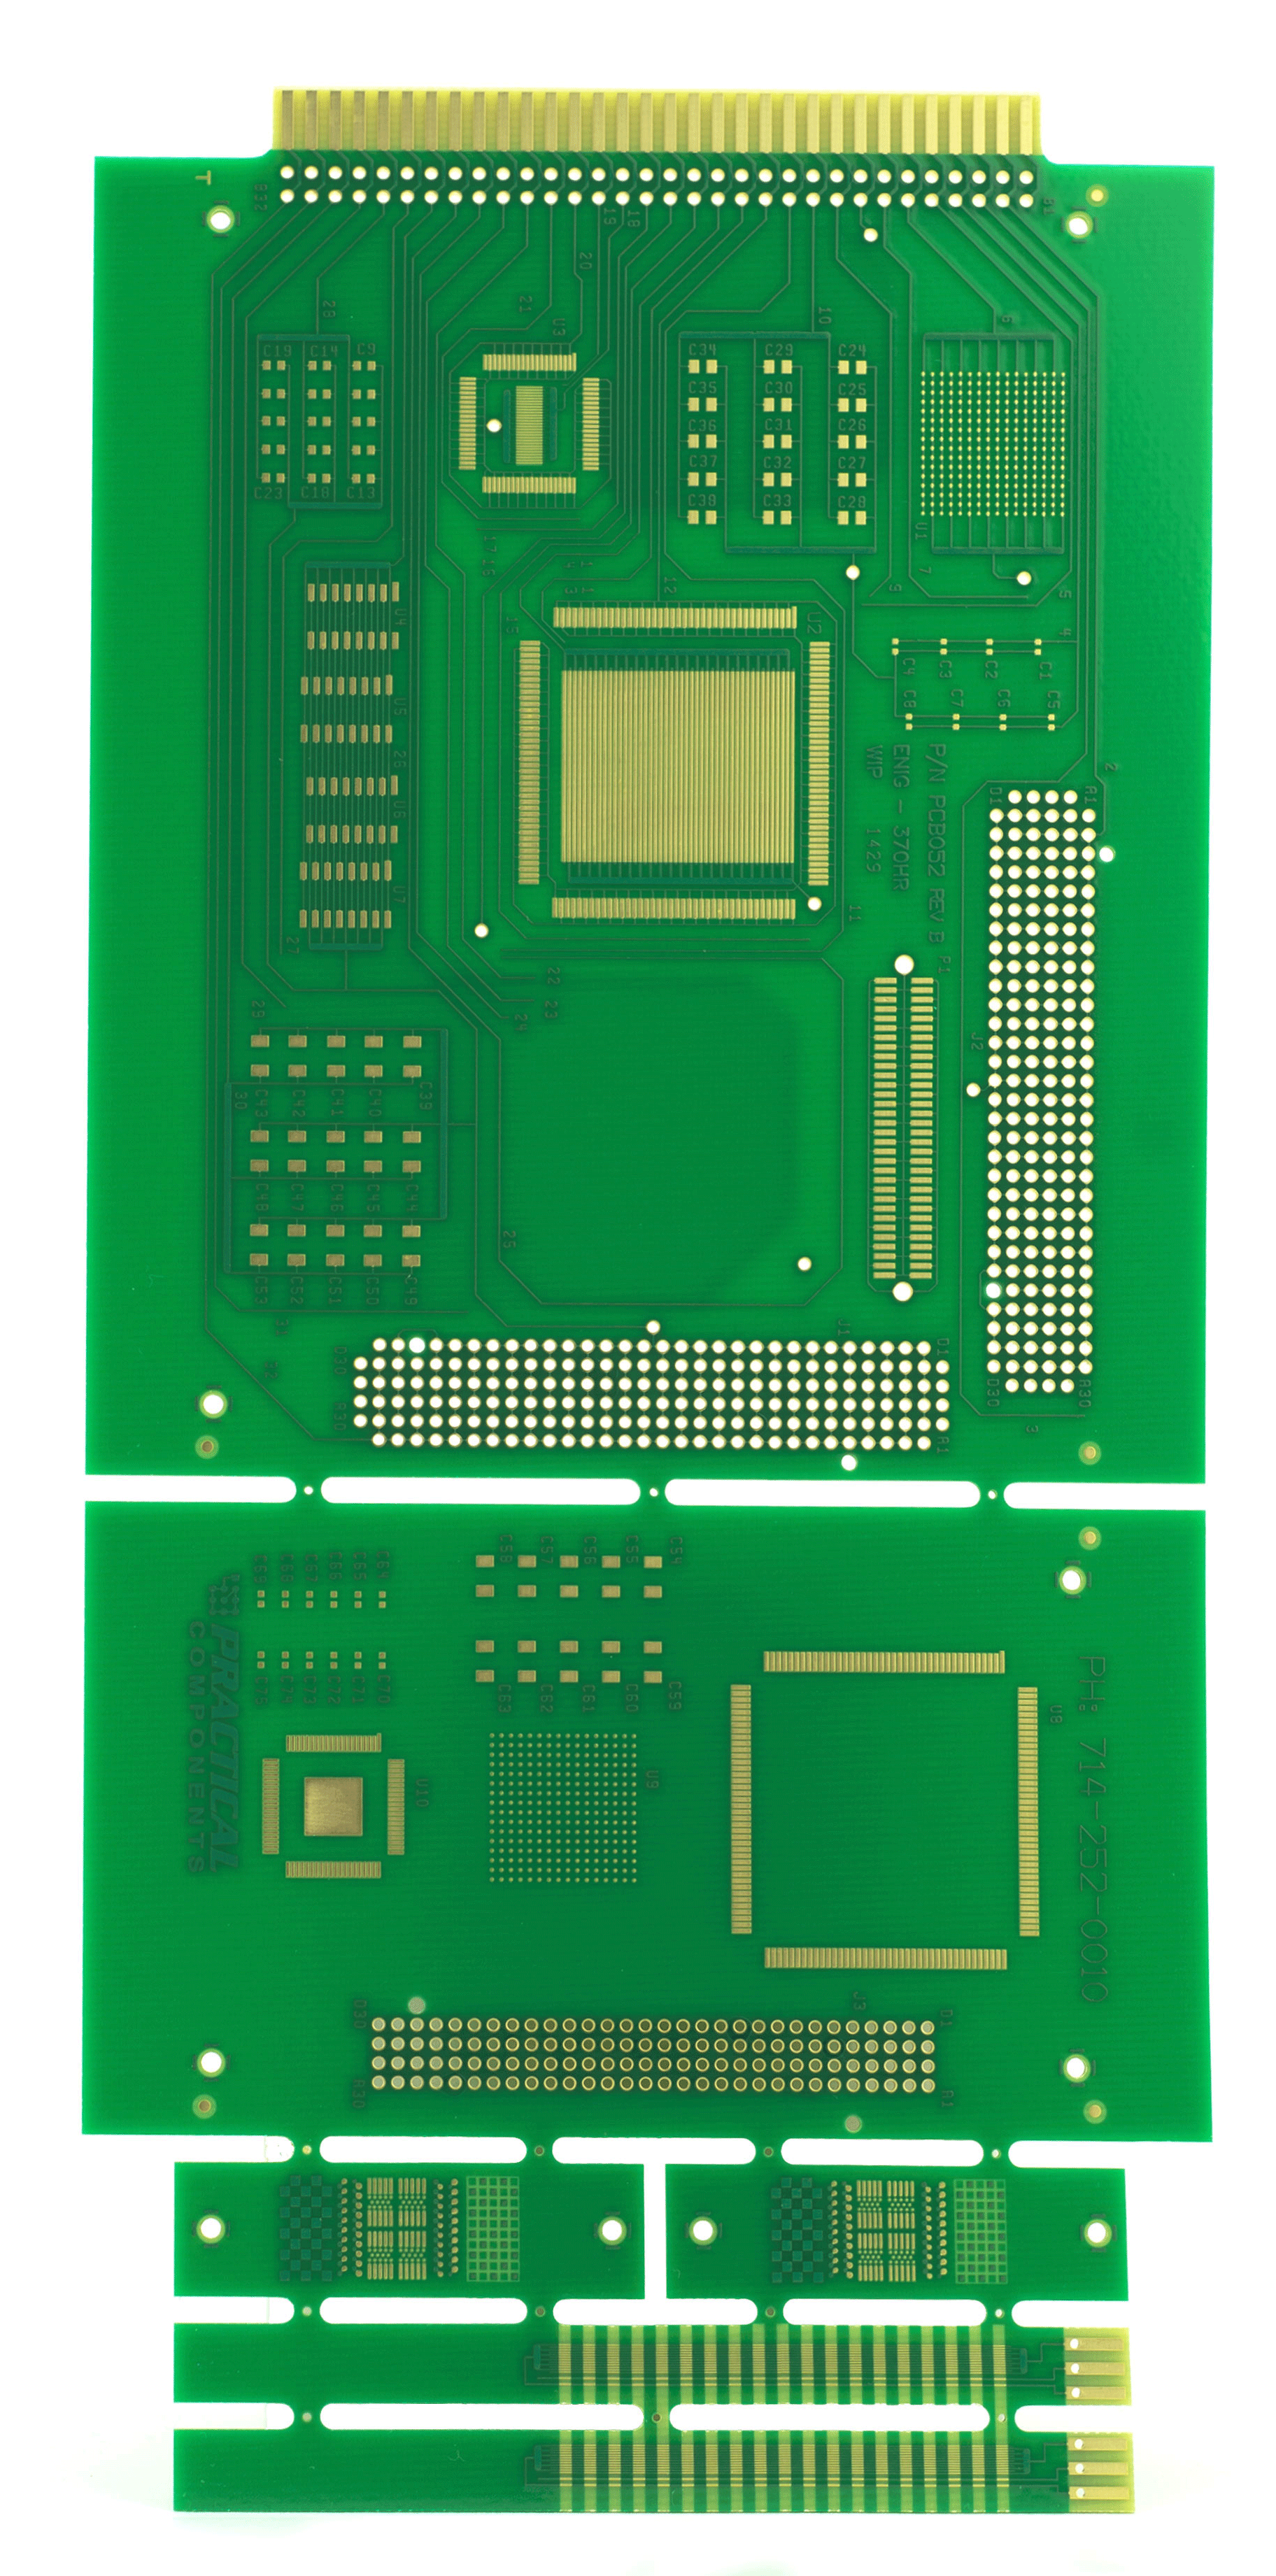 Pcb Test Vehicles For Cleaning And Conformal Coating Of Contaminants Circuit Board B 52 Cret Rev Cleanliness Residue Evaluation Kit